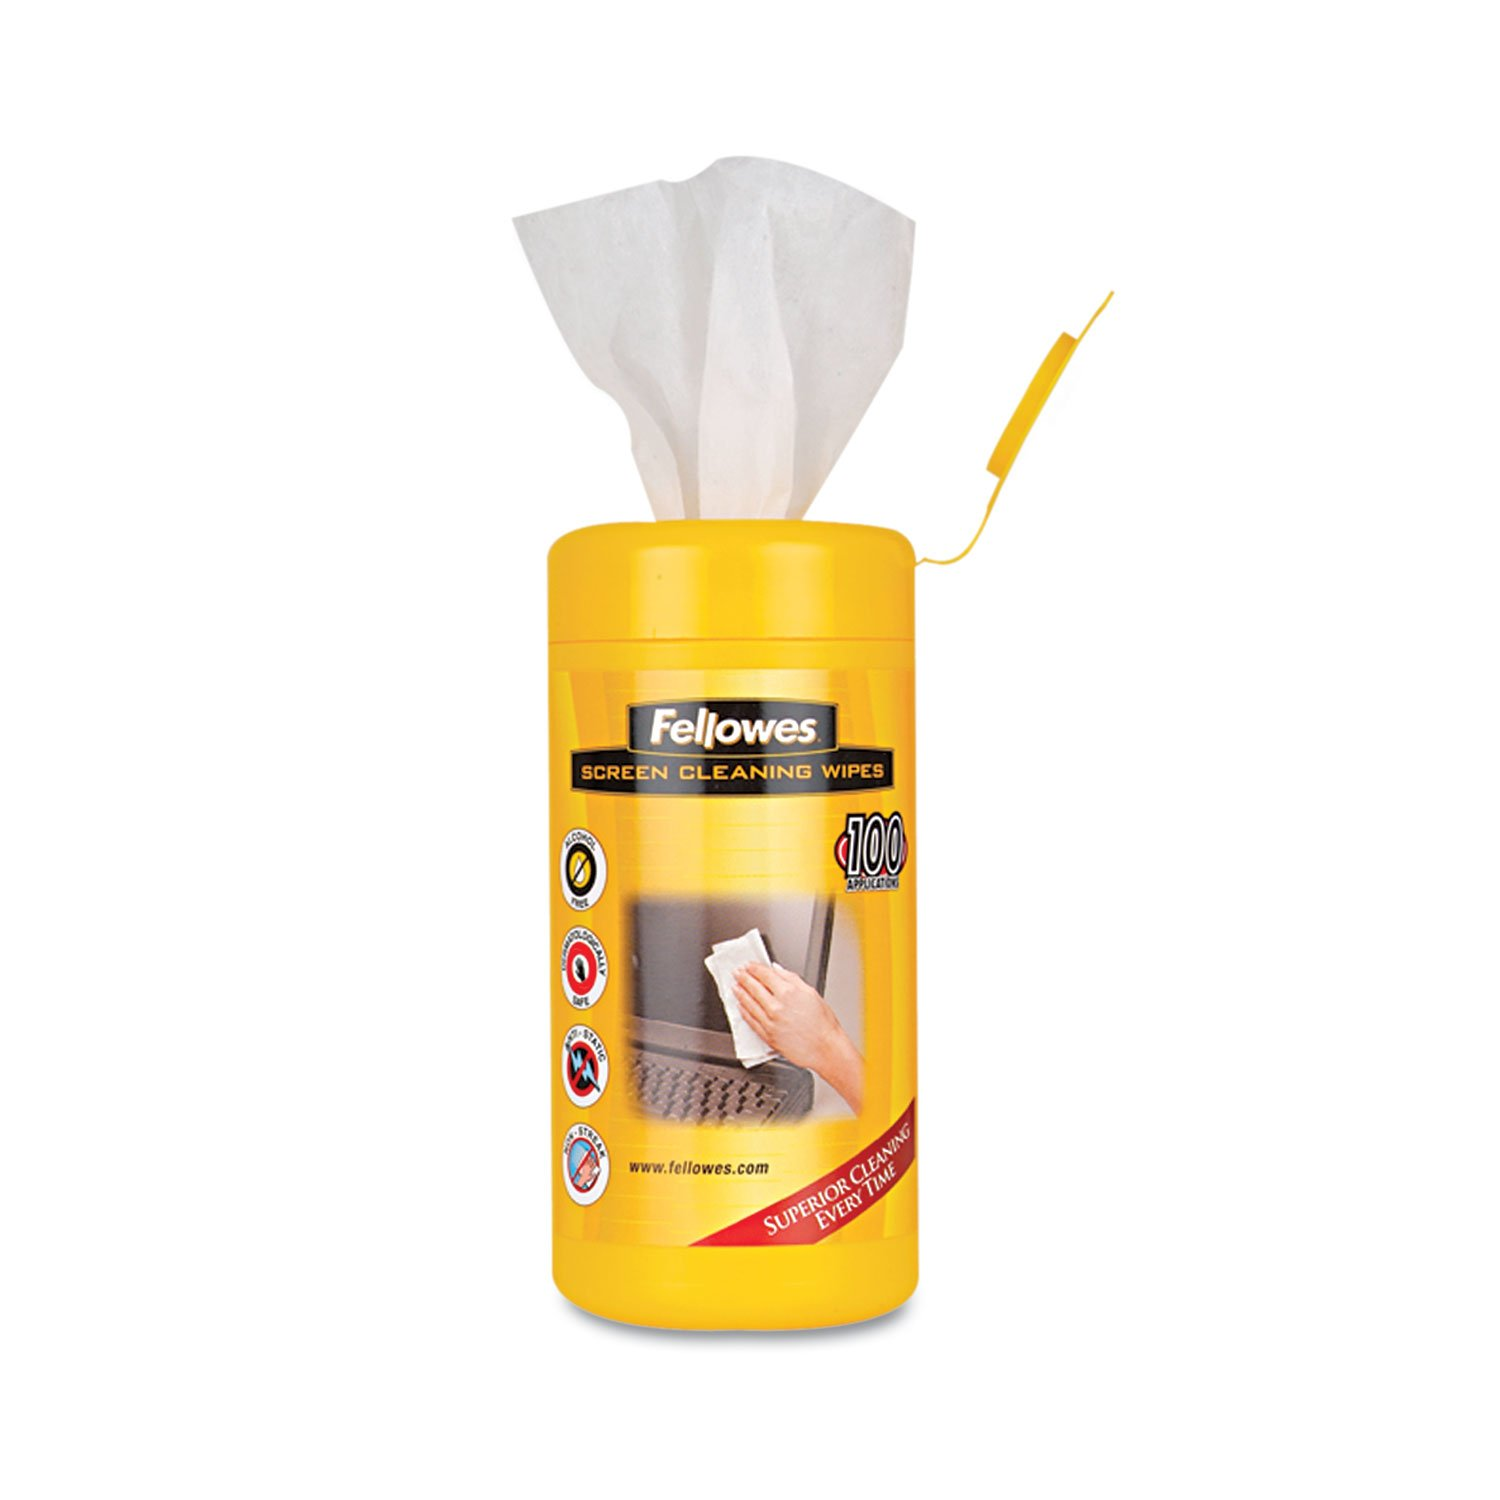 Fellowes 99703 Screen Cleaner Wipes, Alcohol-free, 100 Wipes by Fellowes (Image #1)